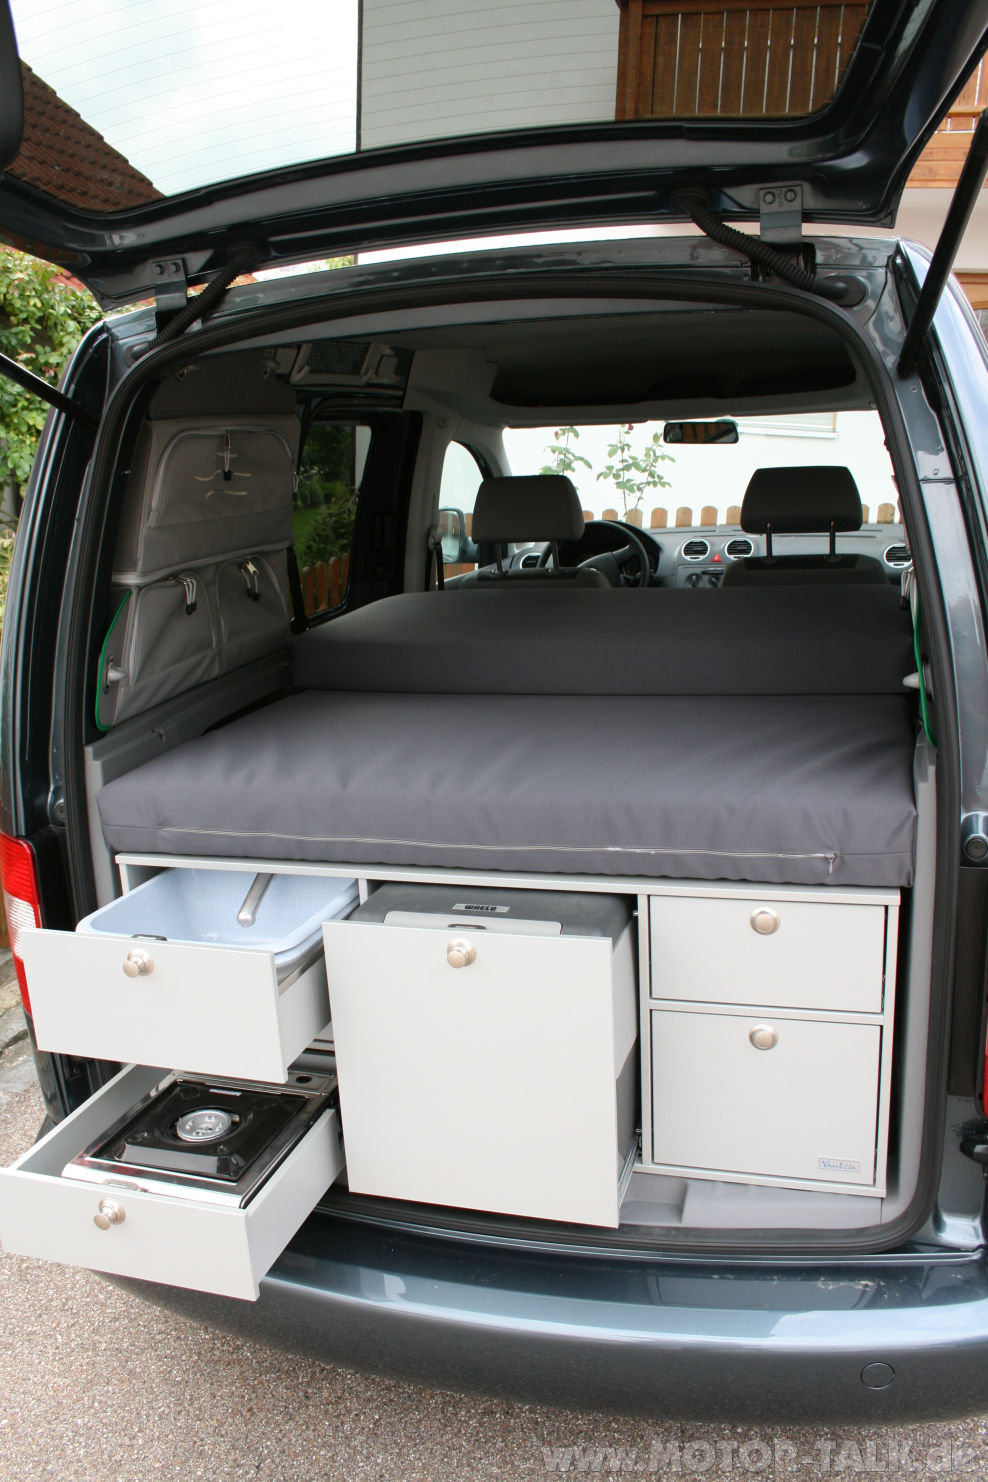 vanessa matratze camping vw caddy 203003170. Black Bedroom Furniture Sets. Home Design Ideas